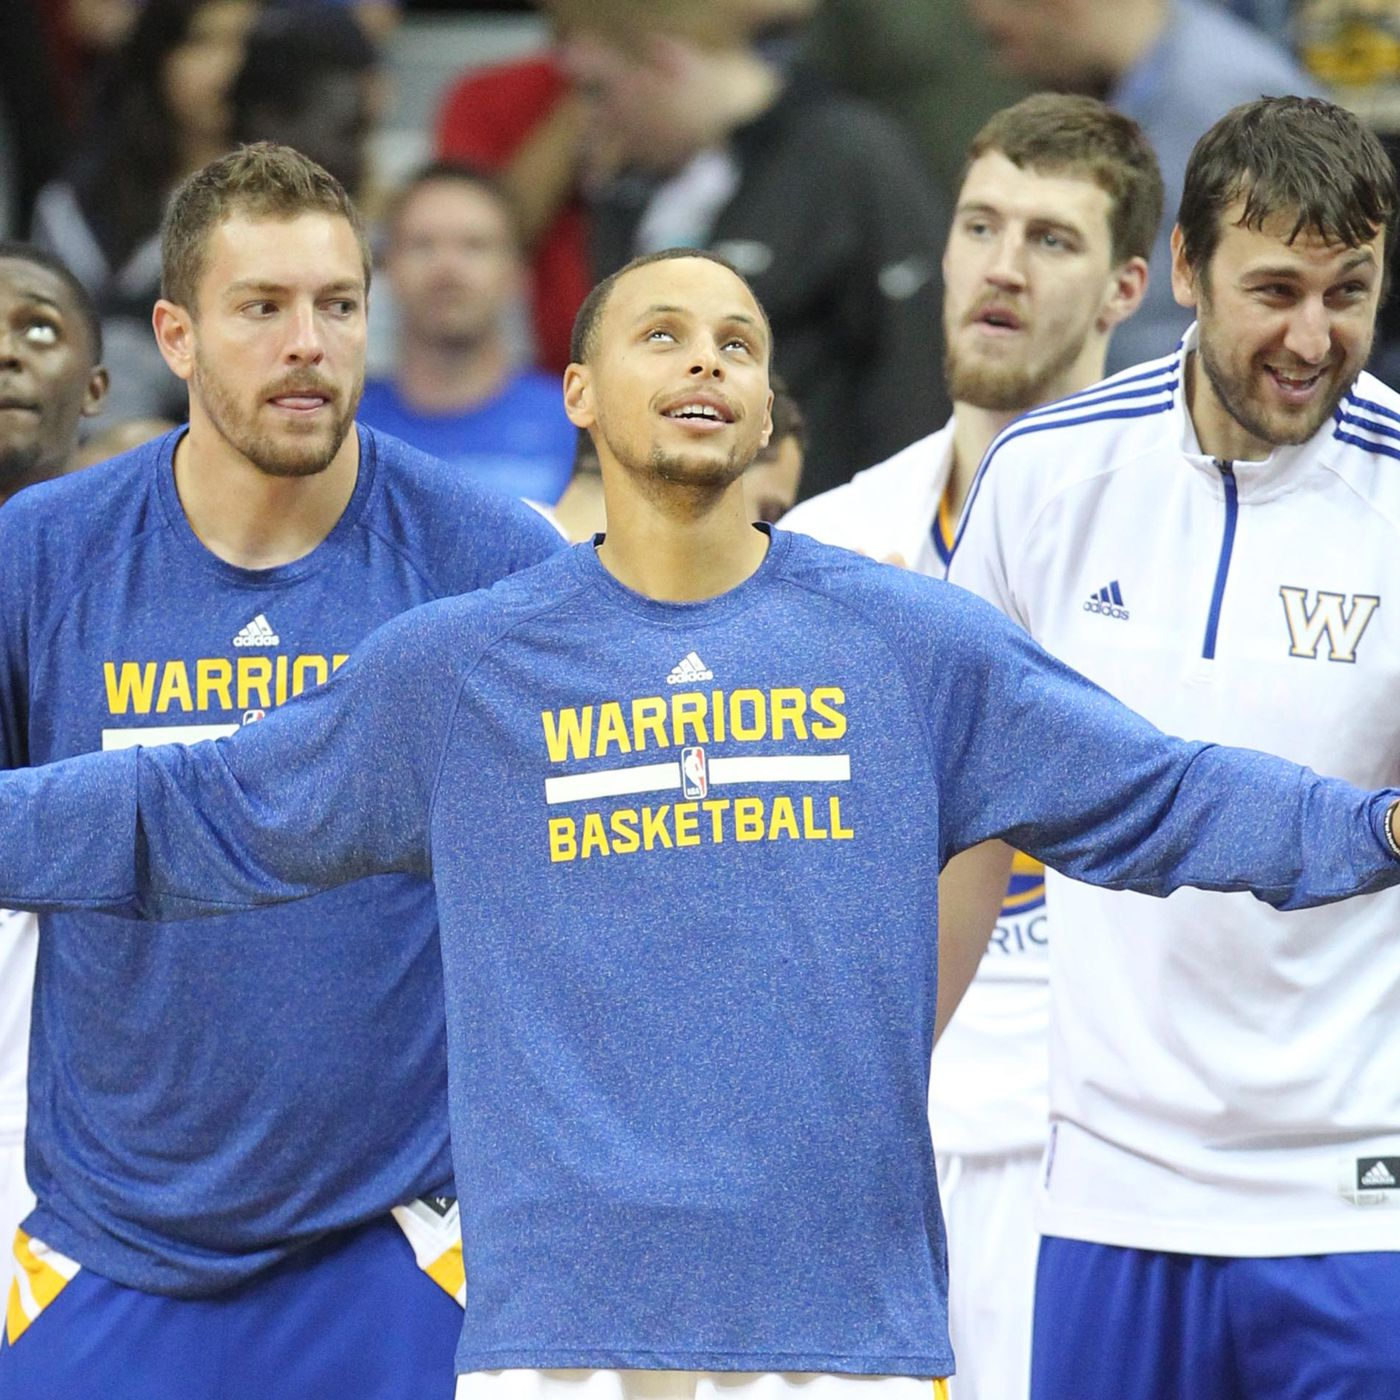 The weird Warriors are the perfect team for the modern NBA ... bc2338f41